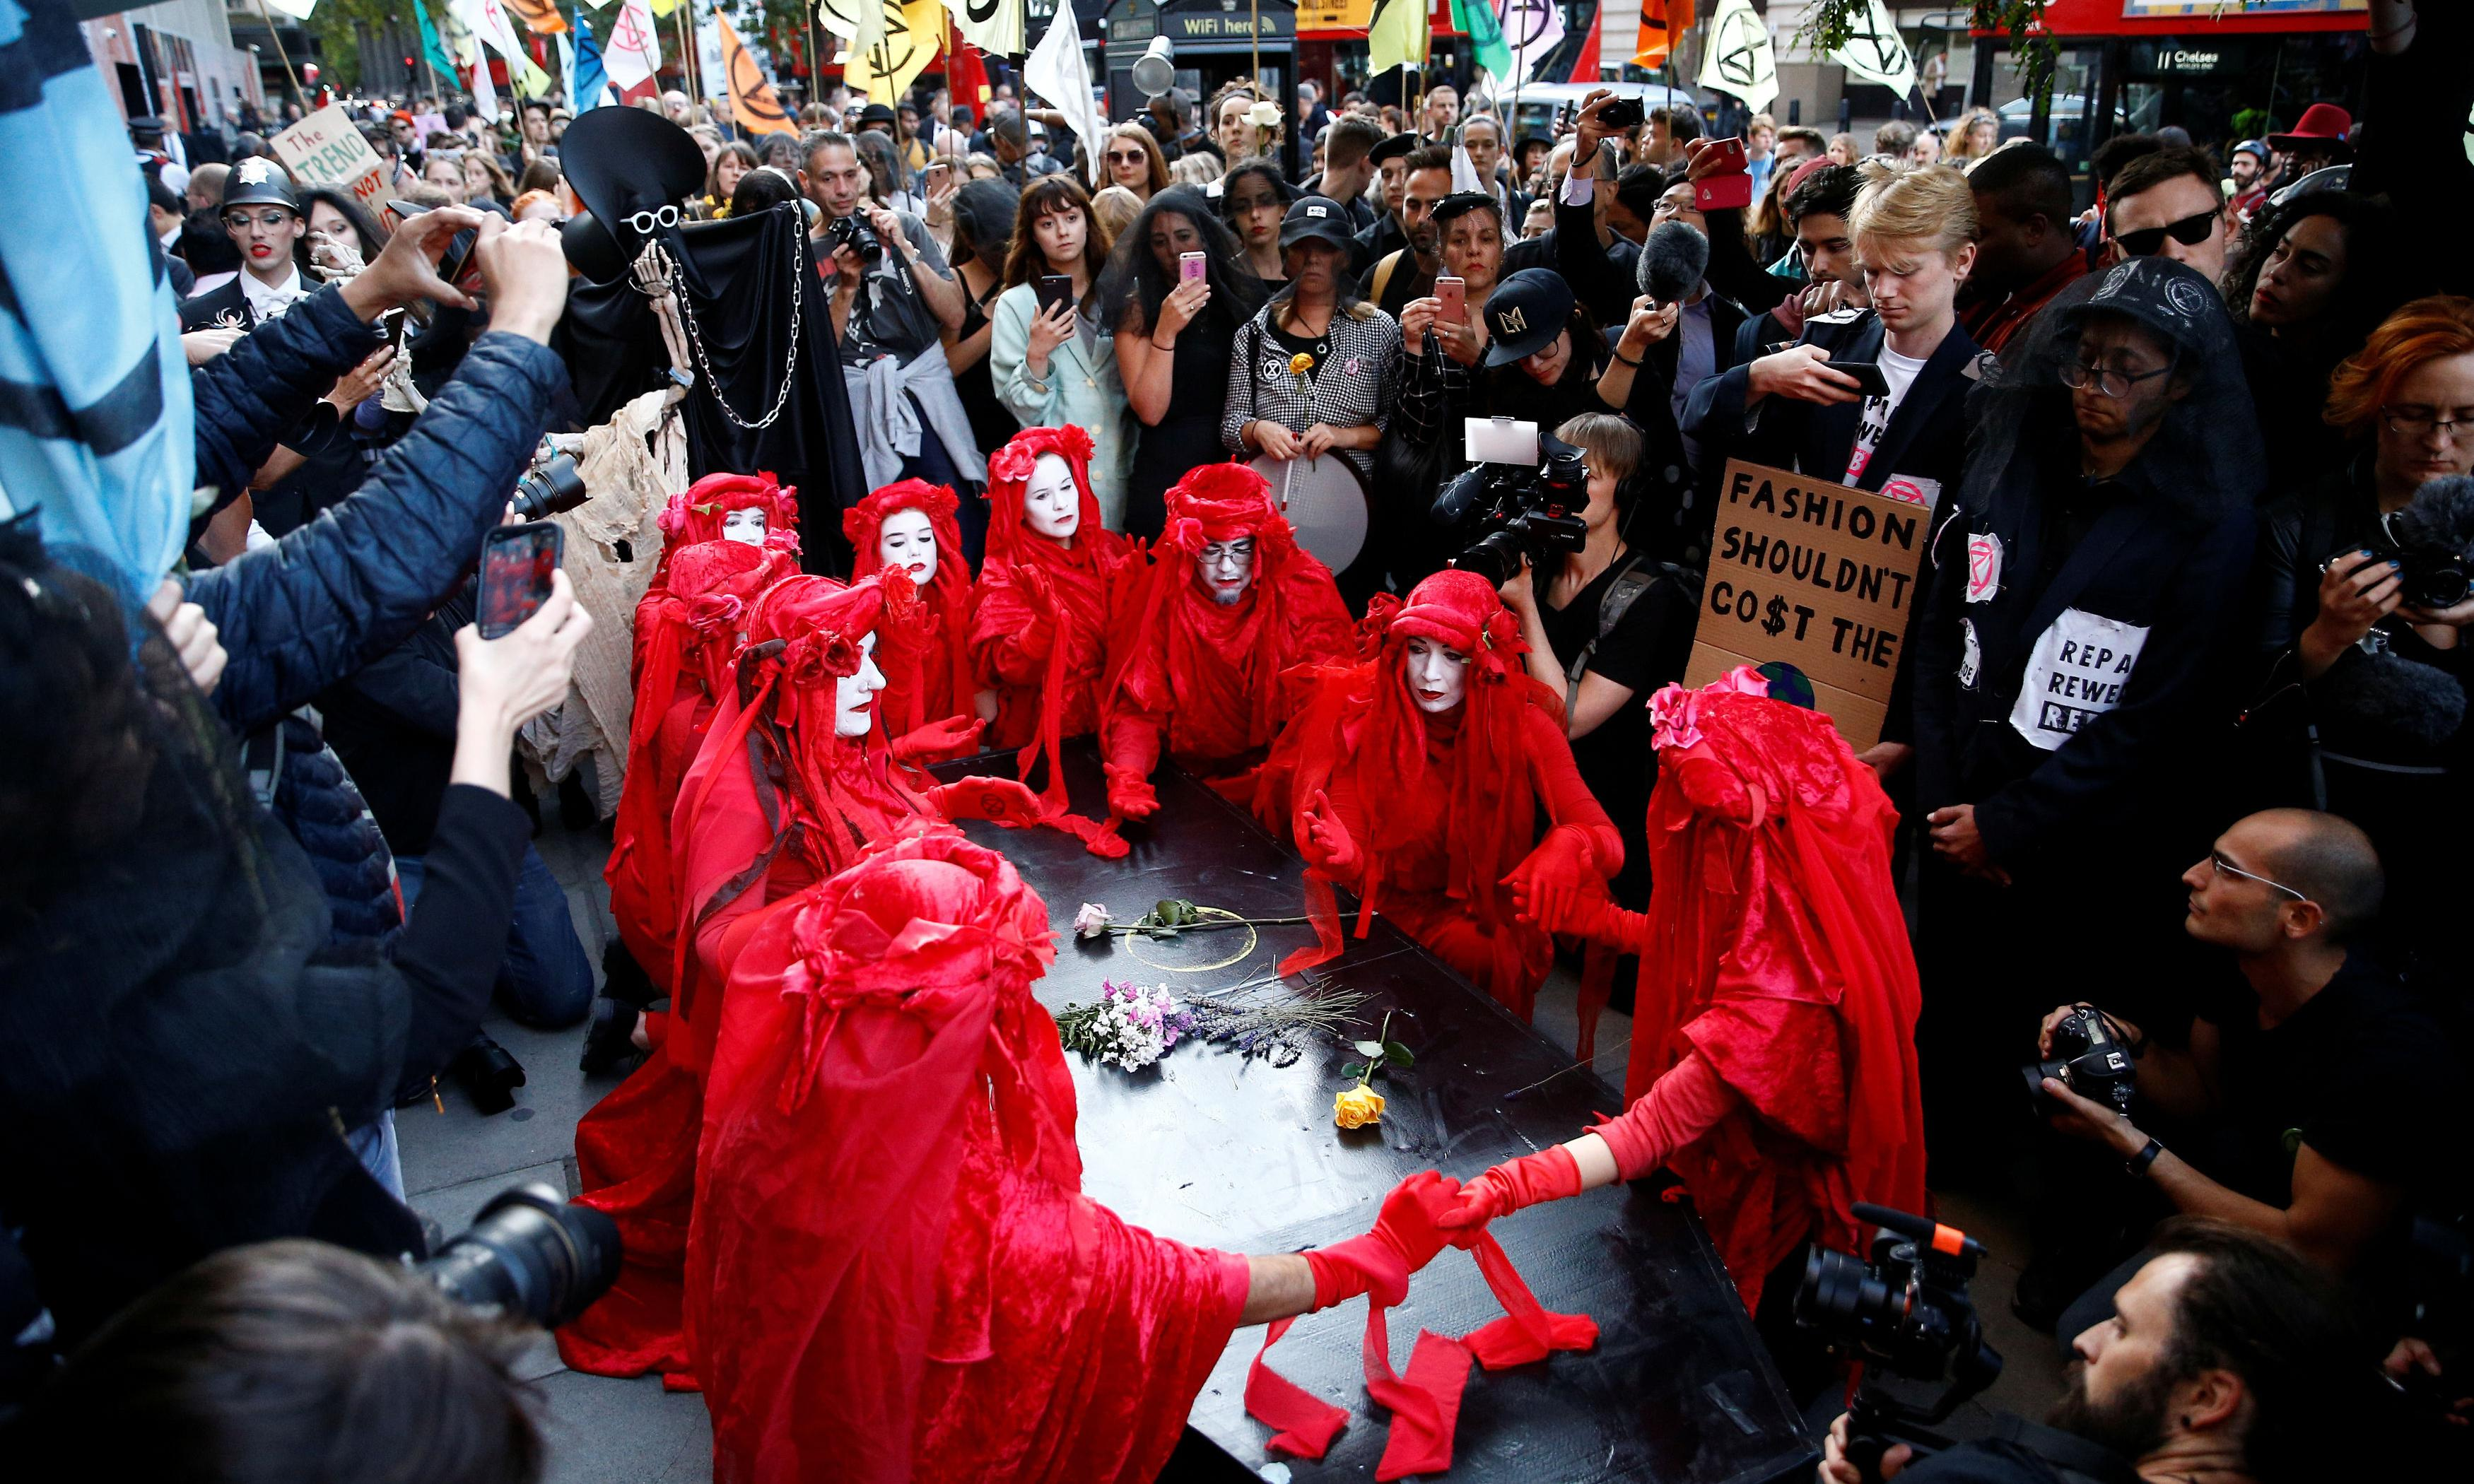 Extinction Rebellion stage funeral at London fashion week finale